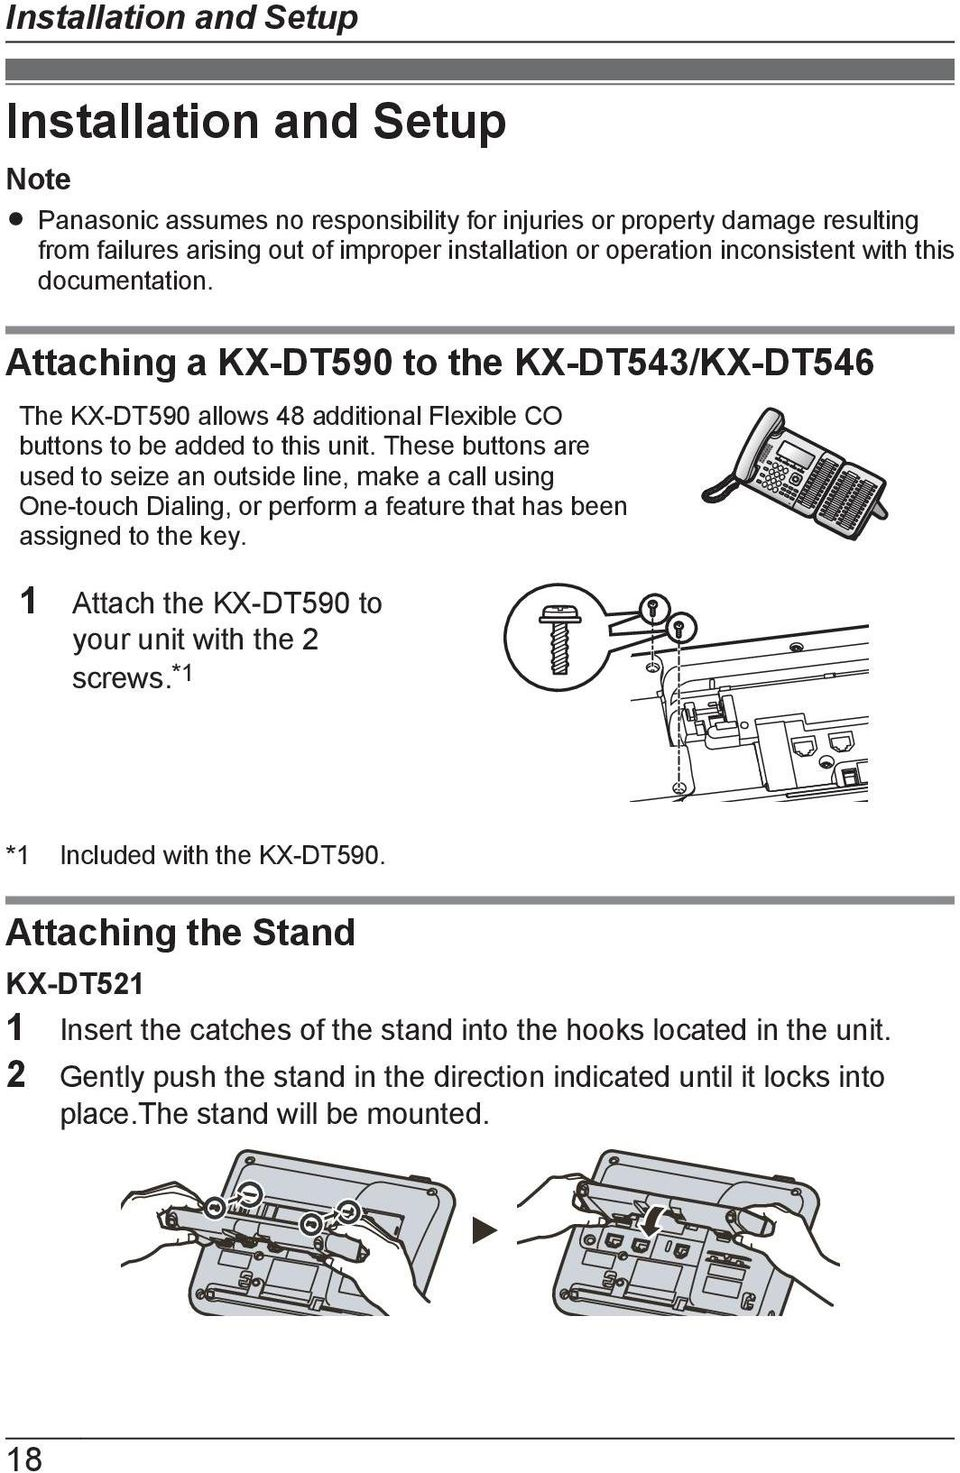 These buttons are used to seize an outside line, make a call using One-touch Dialing, or perform a feature that has been assigned to the key. 1 Attach the KX-DT590 to your unit with the 2 screws.